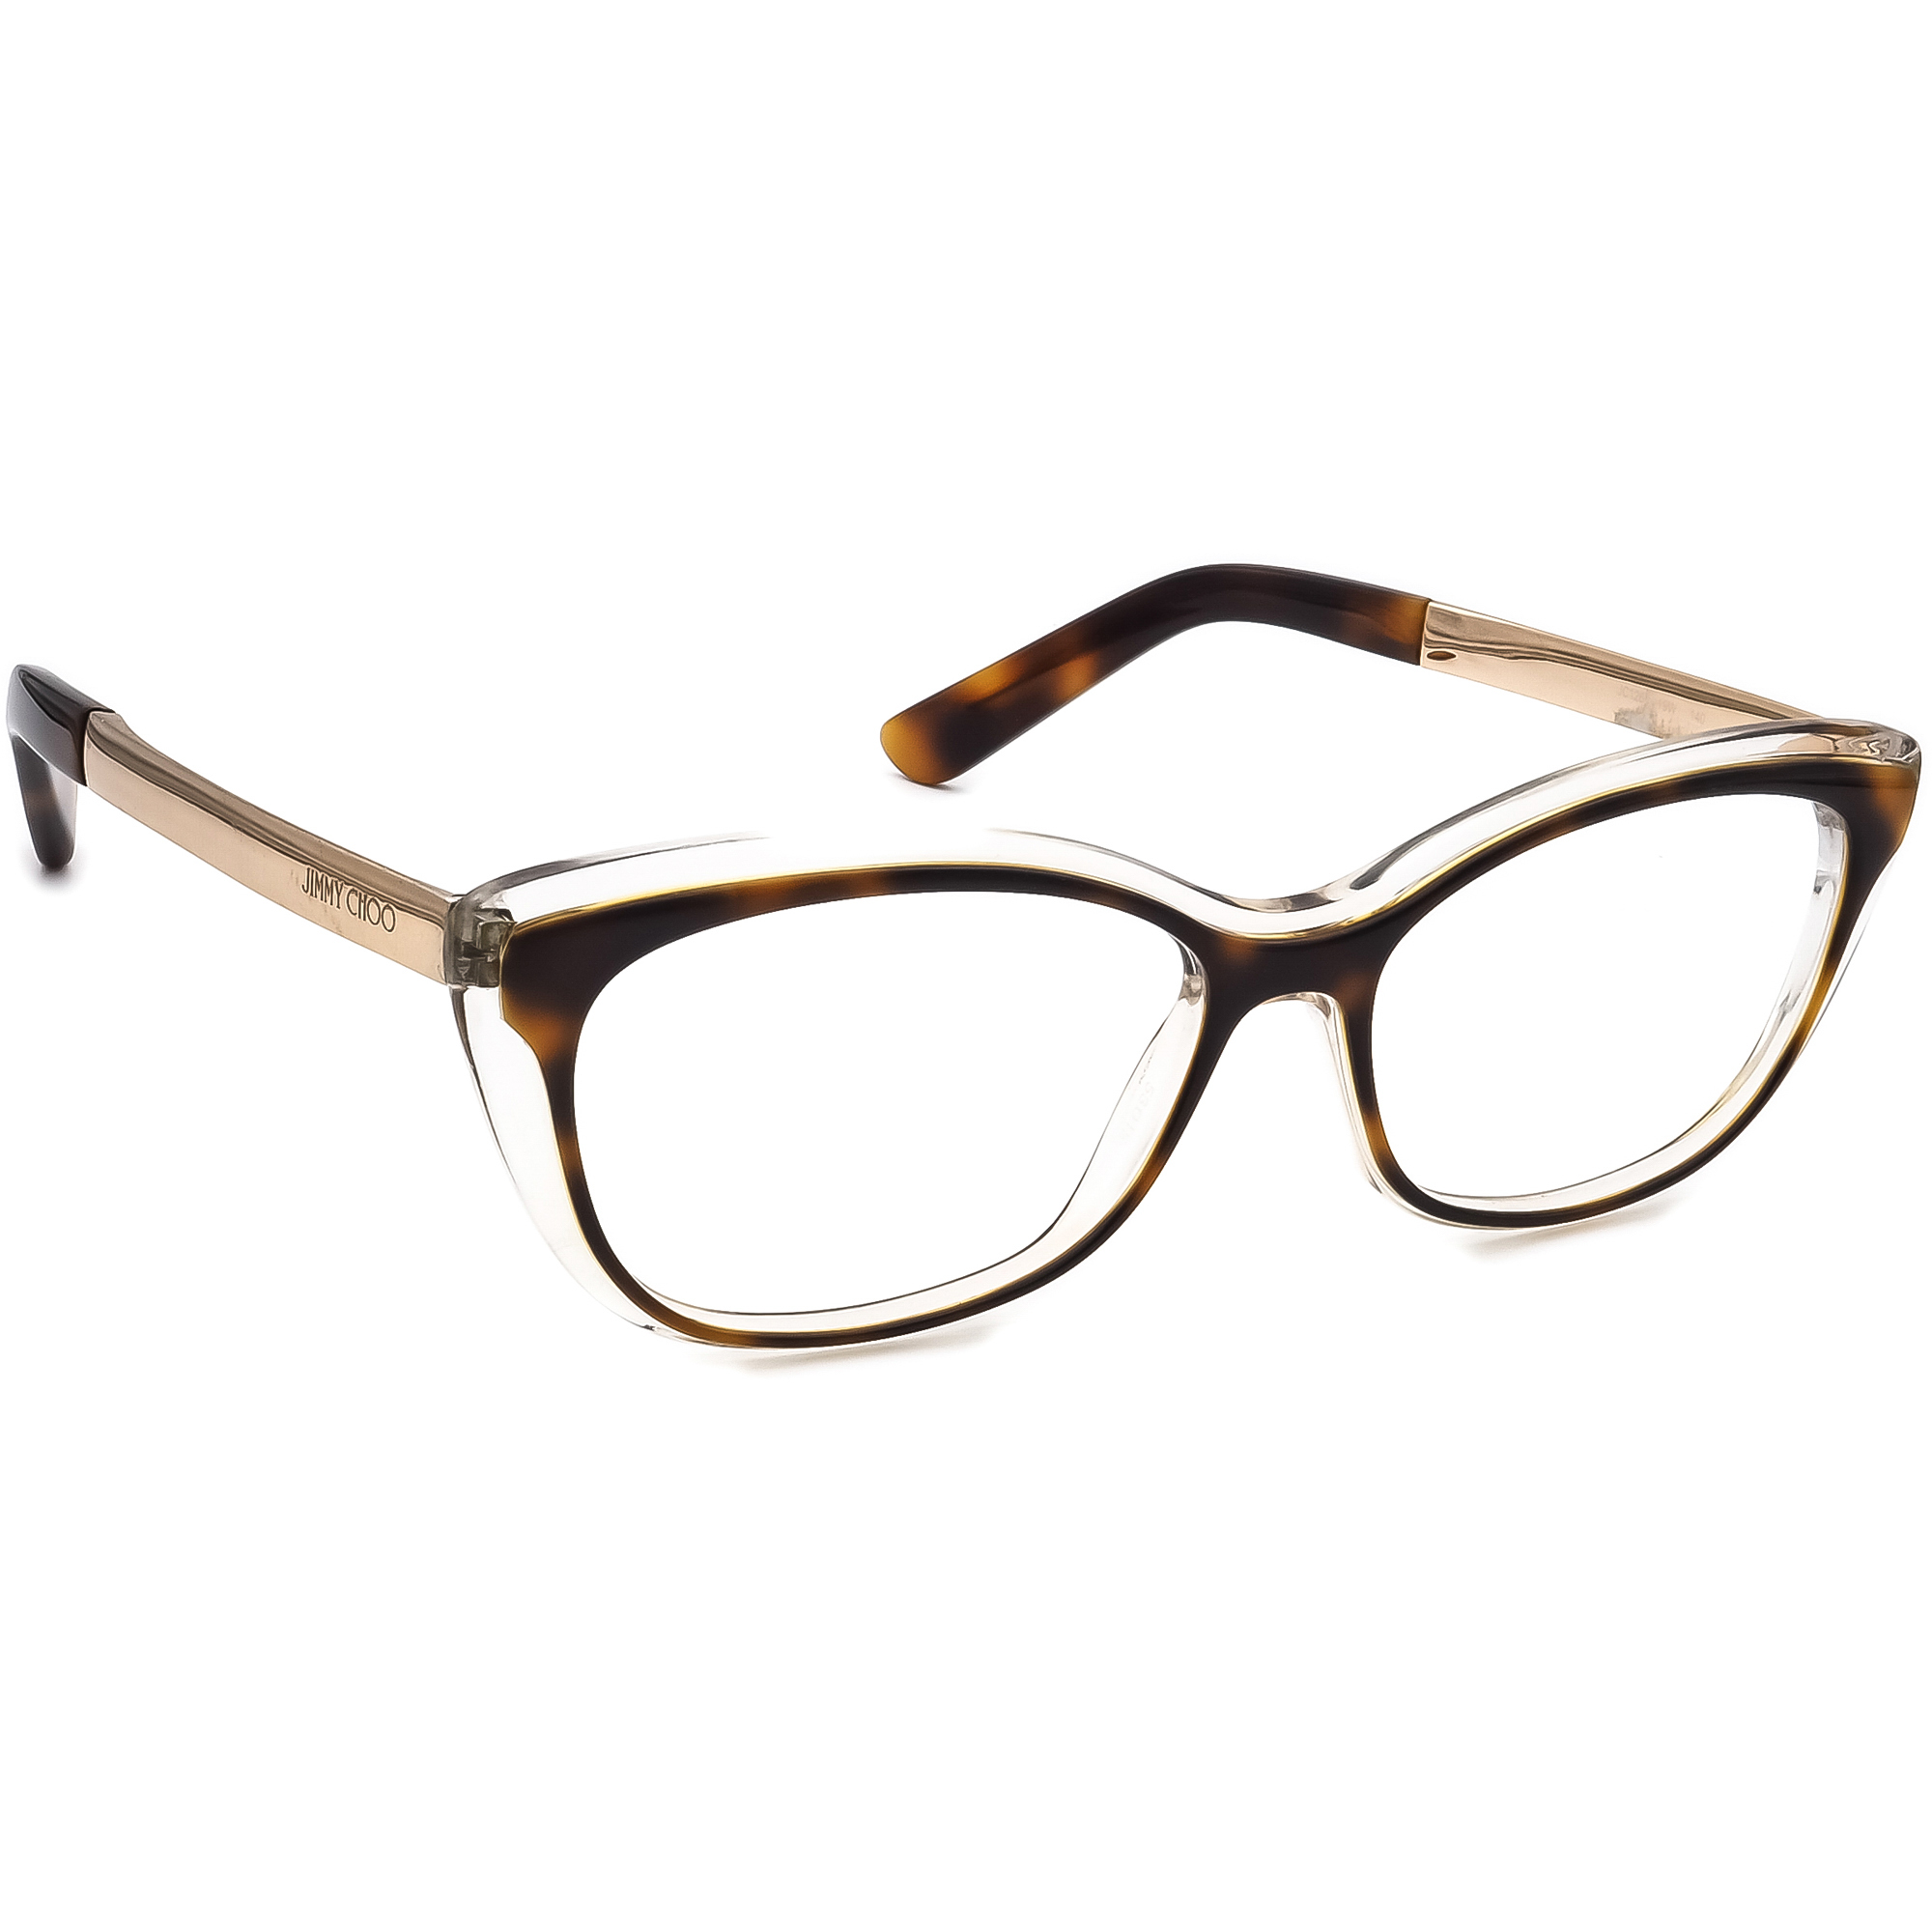 Jimmy Choo Eyeglasses JC 126 19W Tortoise & Clear/Gold Frame Italy 53[]15 140